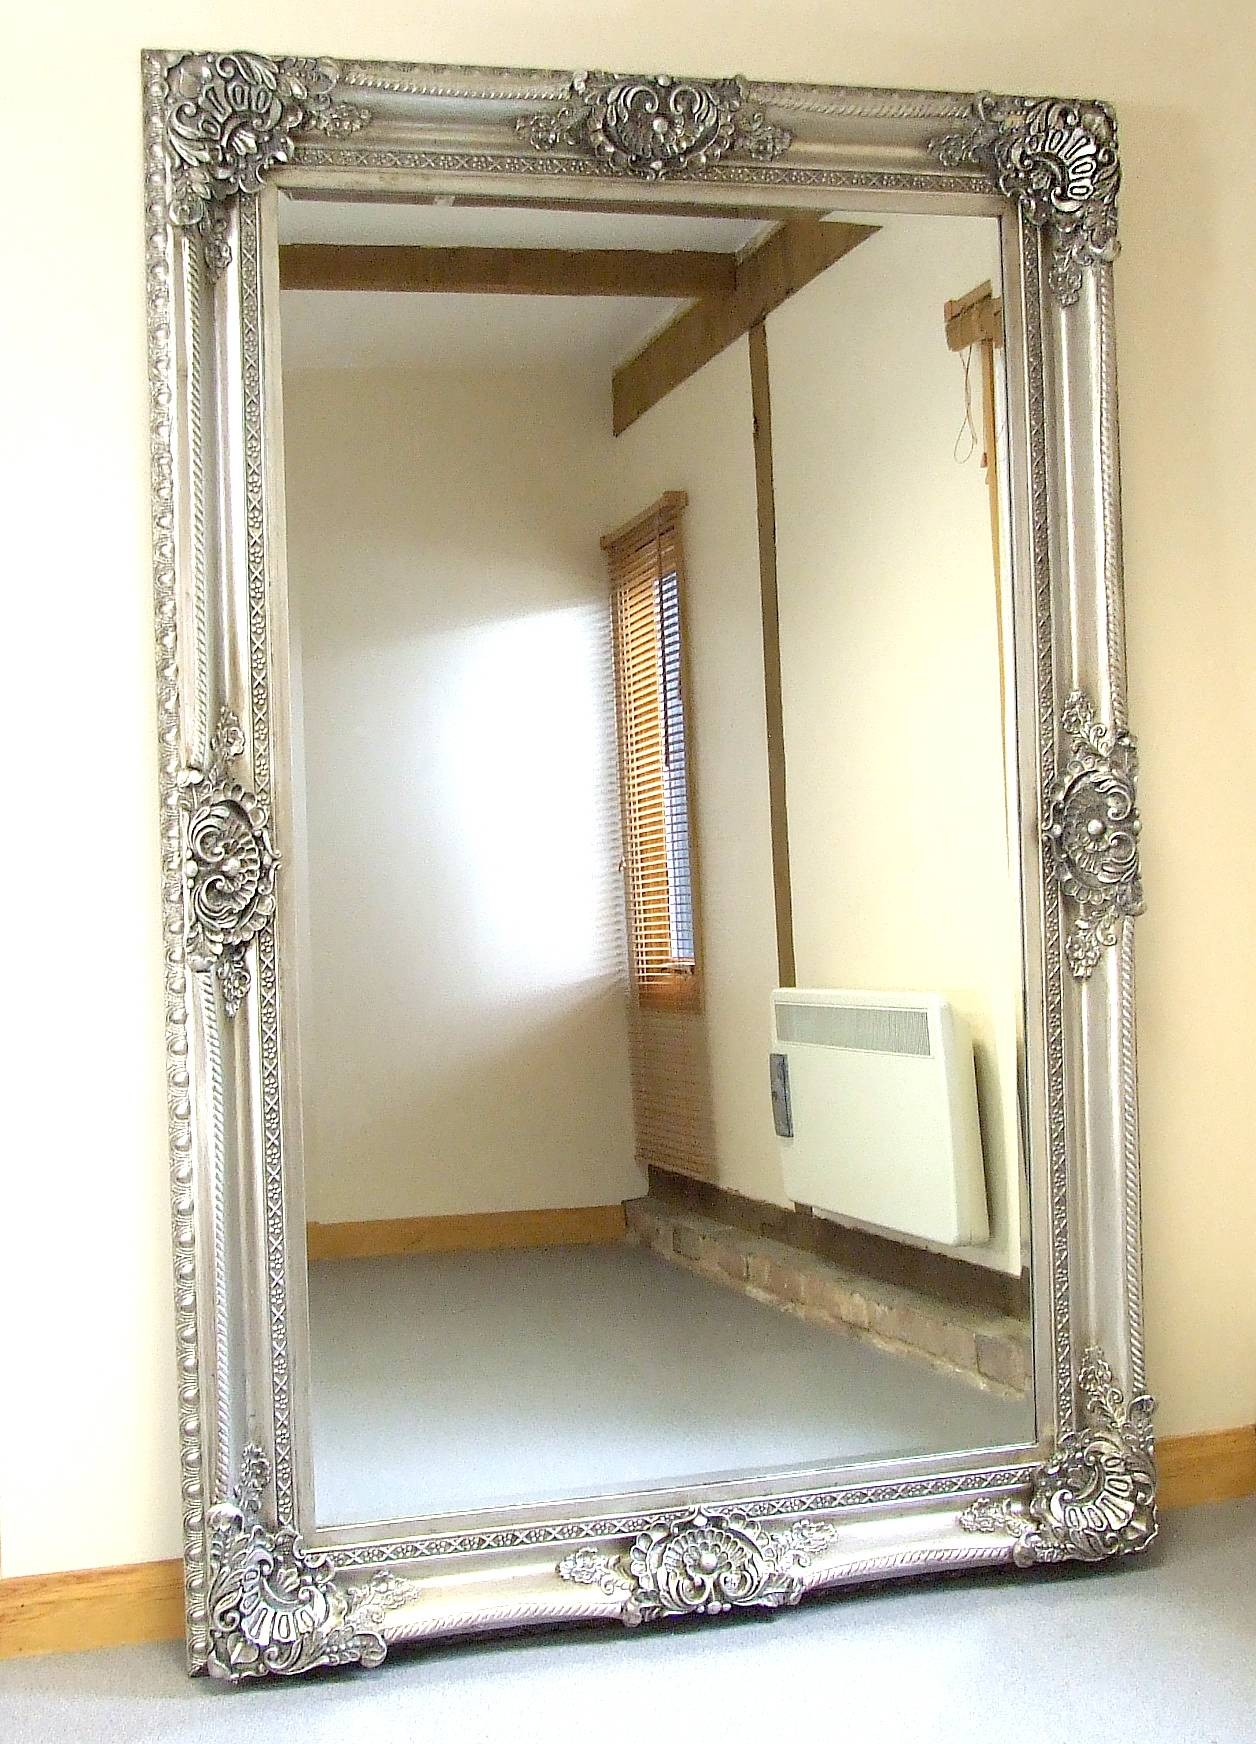 Flooring : Impressive Ornate Floor Mirror Photo Design Antique with French Floor Standing Mirrors (Image 24 of 25)